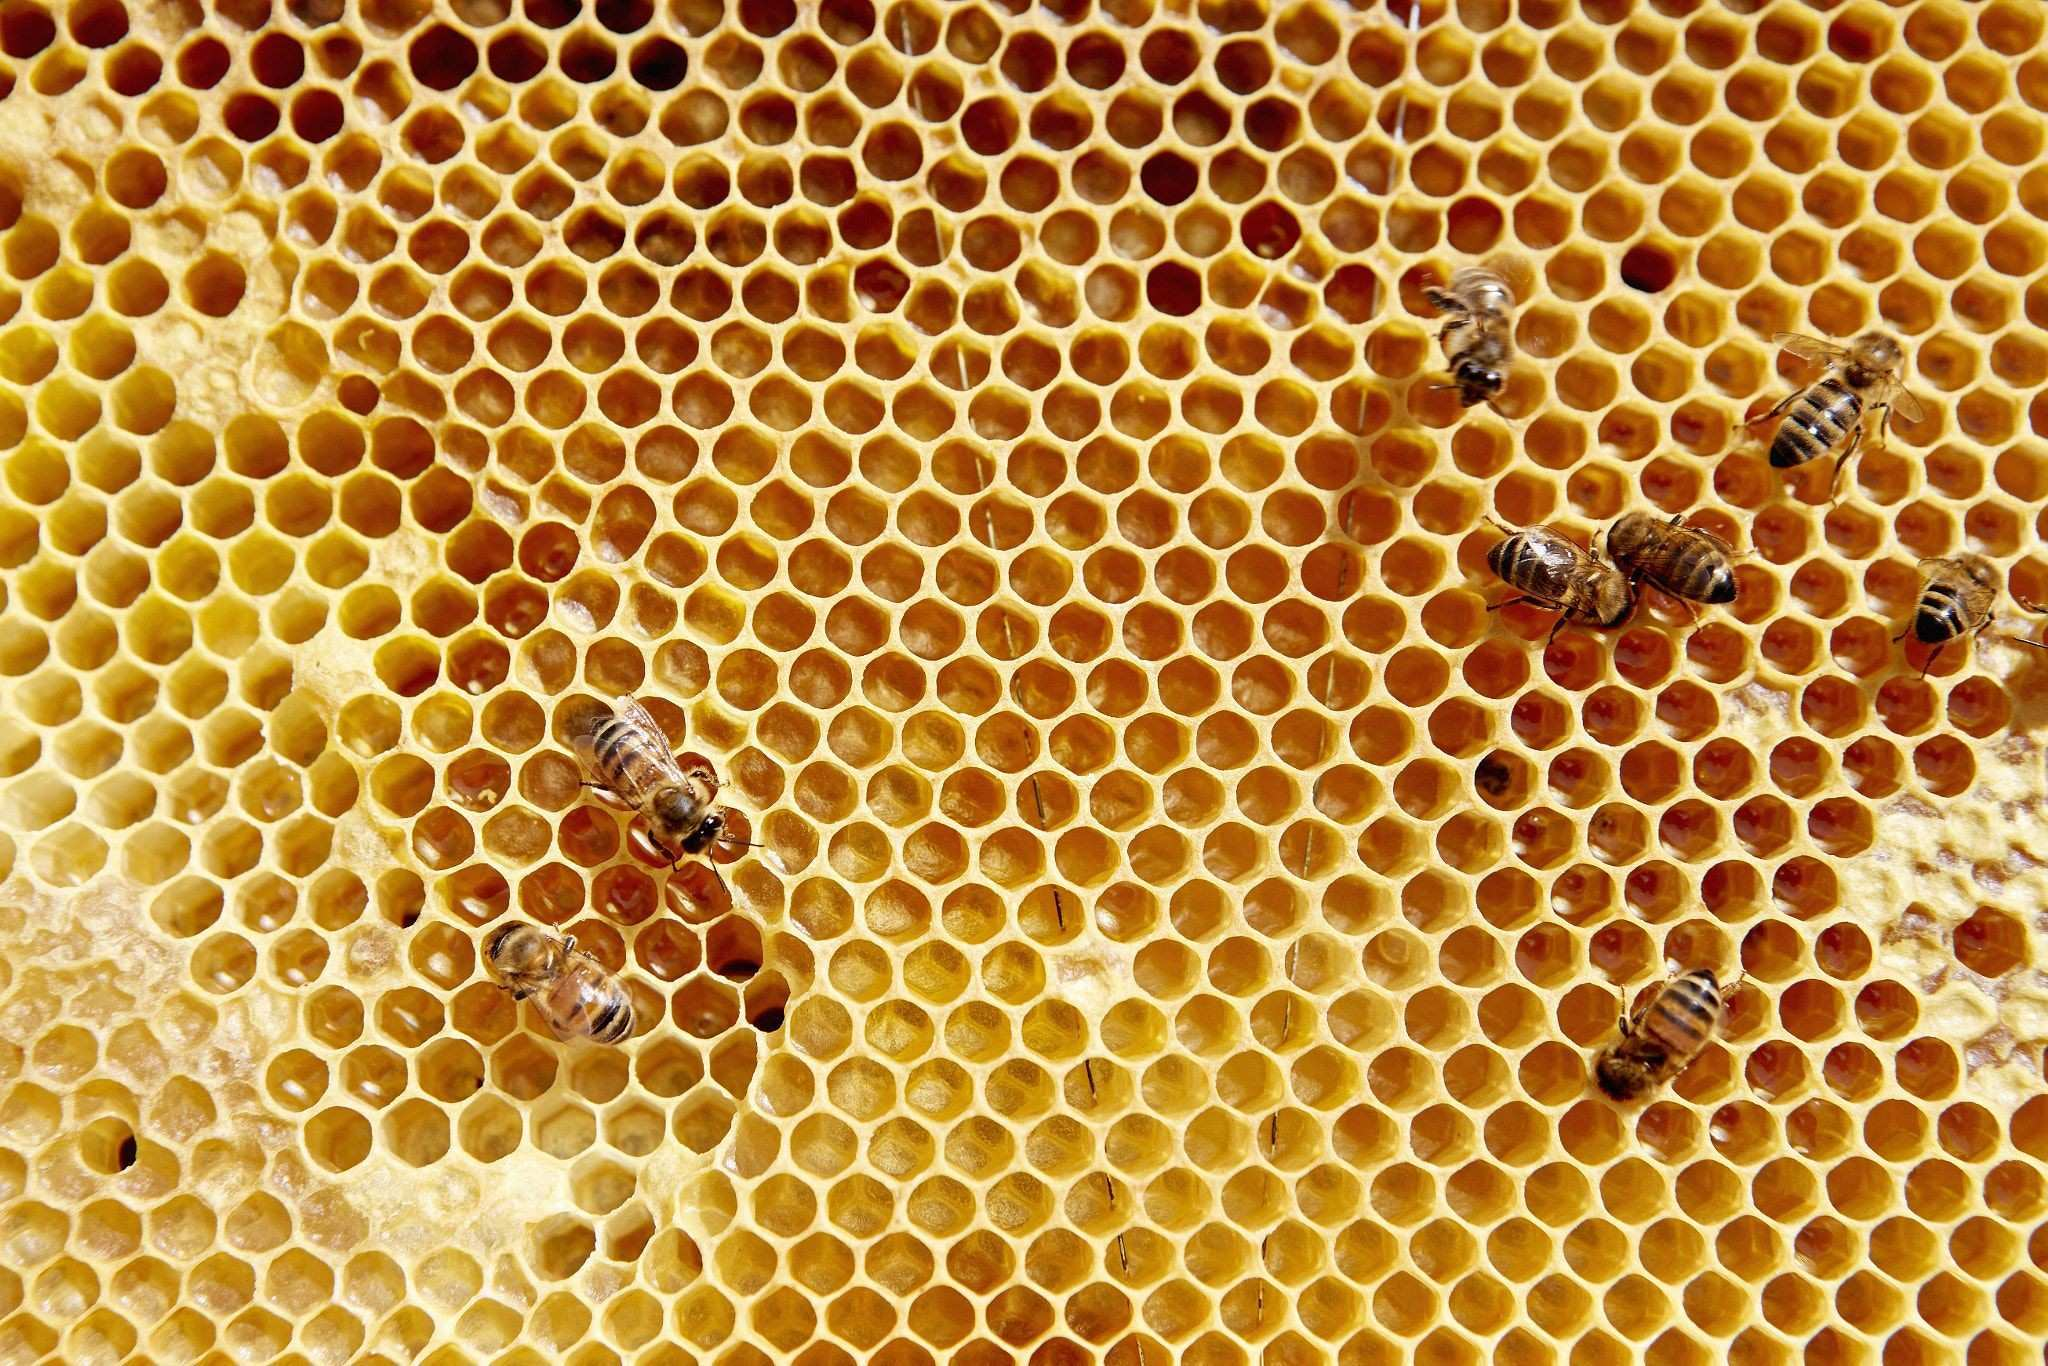 A wooden frame with honey b pattern with a small number of bees